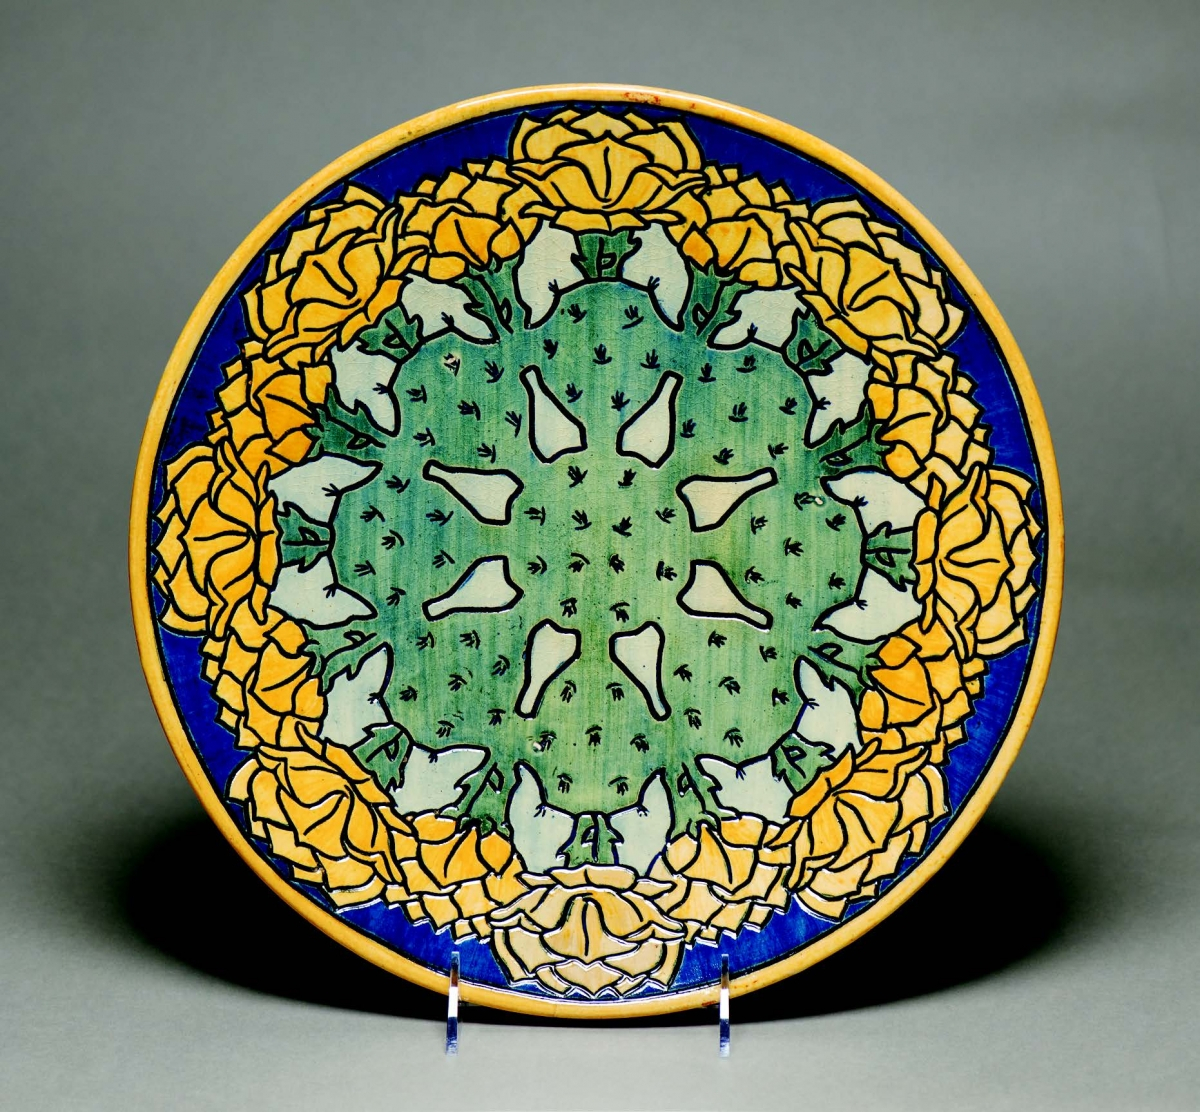 Esther Huger Elliot (decorator); Joseph Meyer (potter), Plate with a Design of Cactus Flowers, ca. 1904. Ceramic, diam. 32.7 cm. Collection of Caren Fine